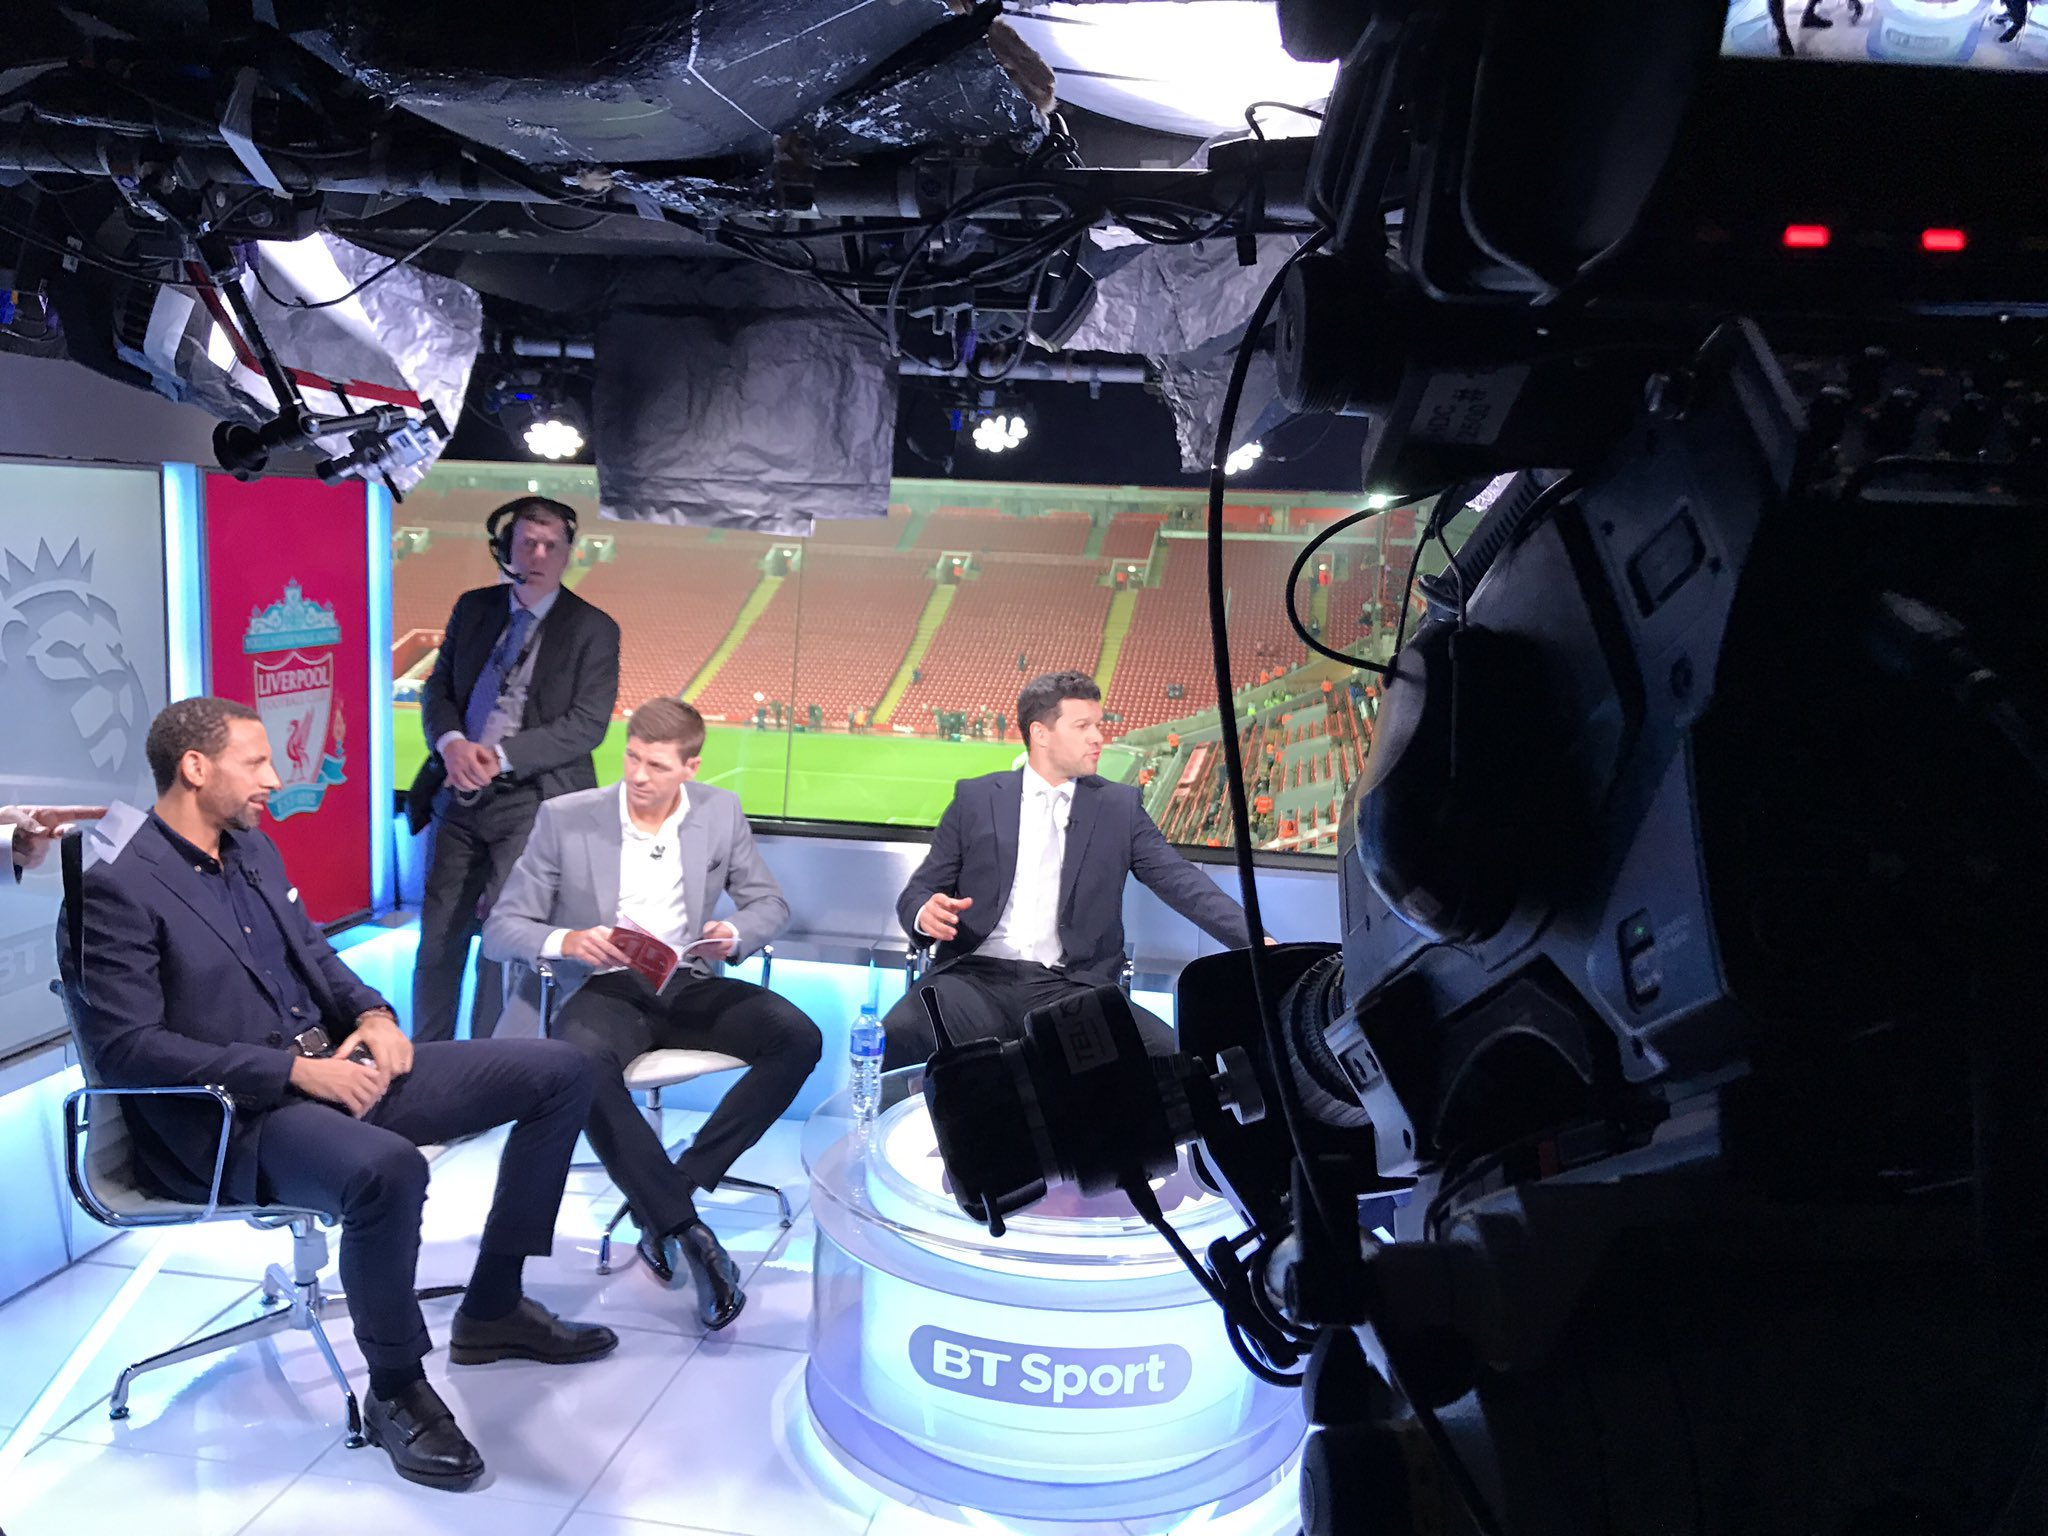 Preparation taking place.. rehearsals ahead of going LIVE at 7pm this evening on @btsport #LIVCHE https://t.co/M2wvdMxUmm